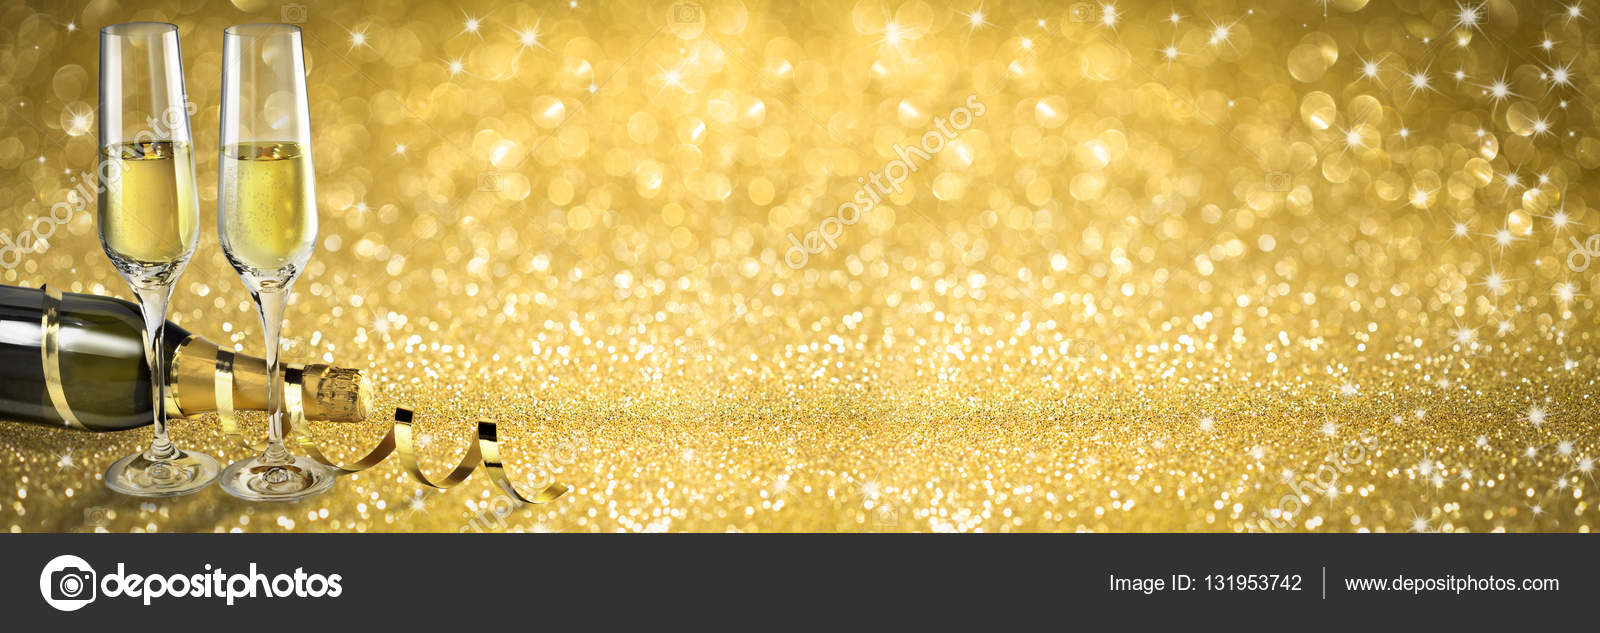 new year toast champagne banner golden background stock photo